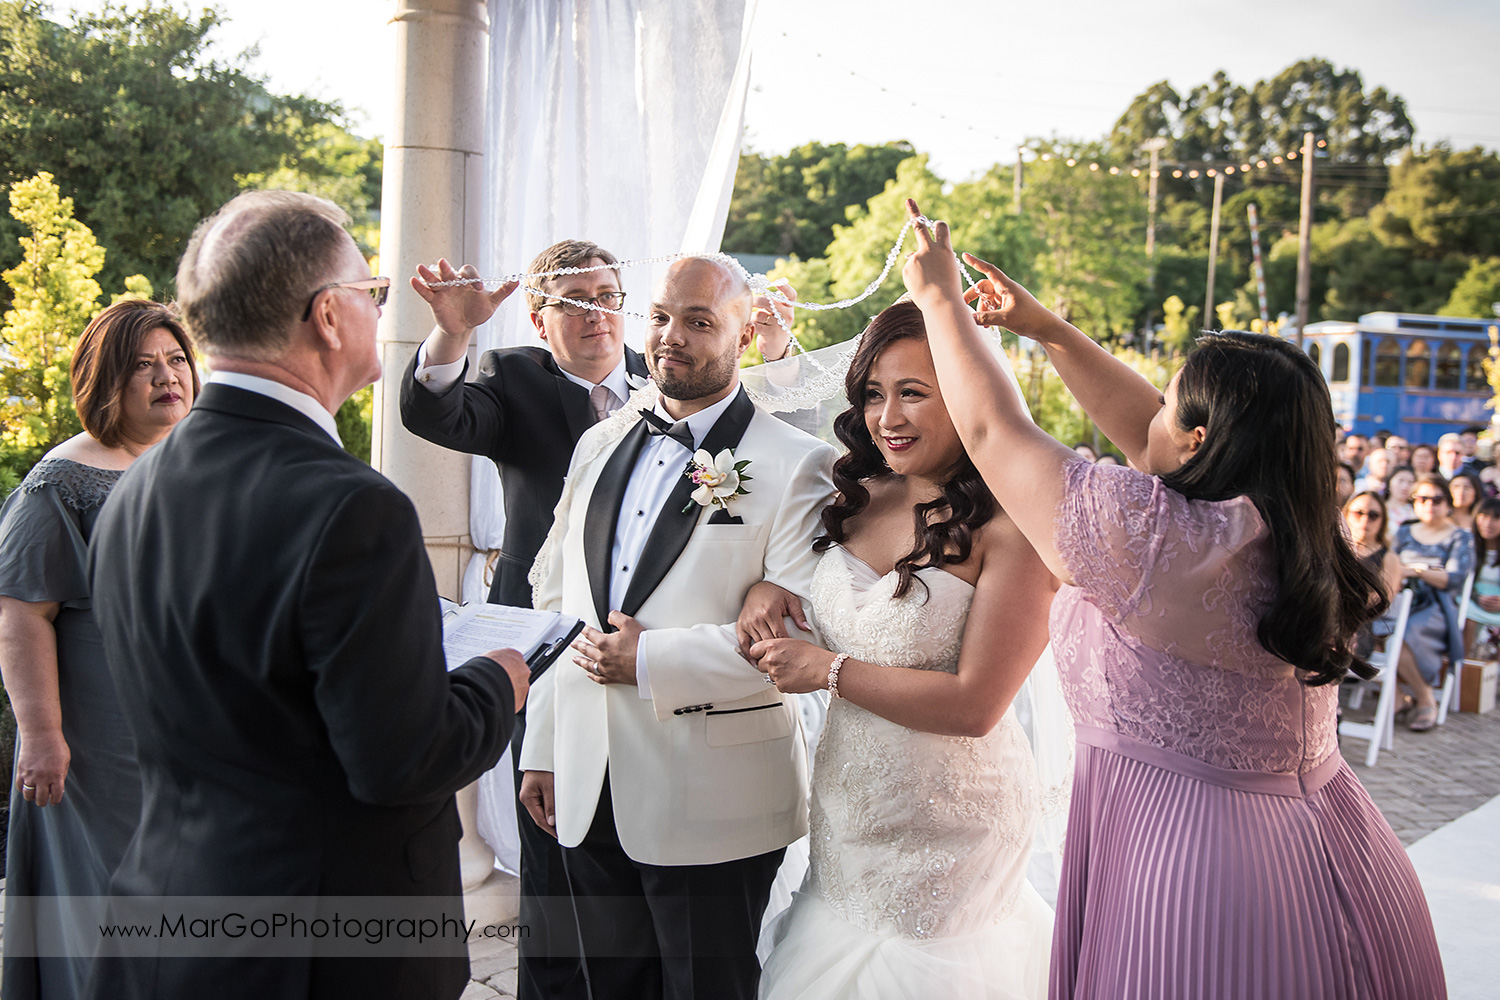 sponsors placing lasso rosary around bride and groom during wedding ceremony at Sunol's Casa Bella